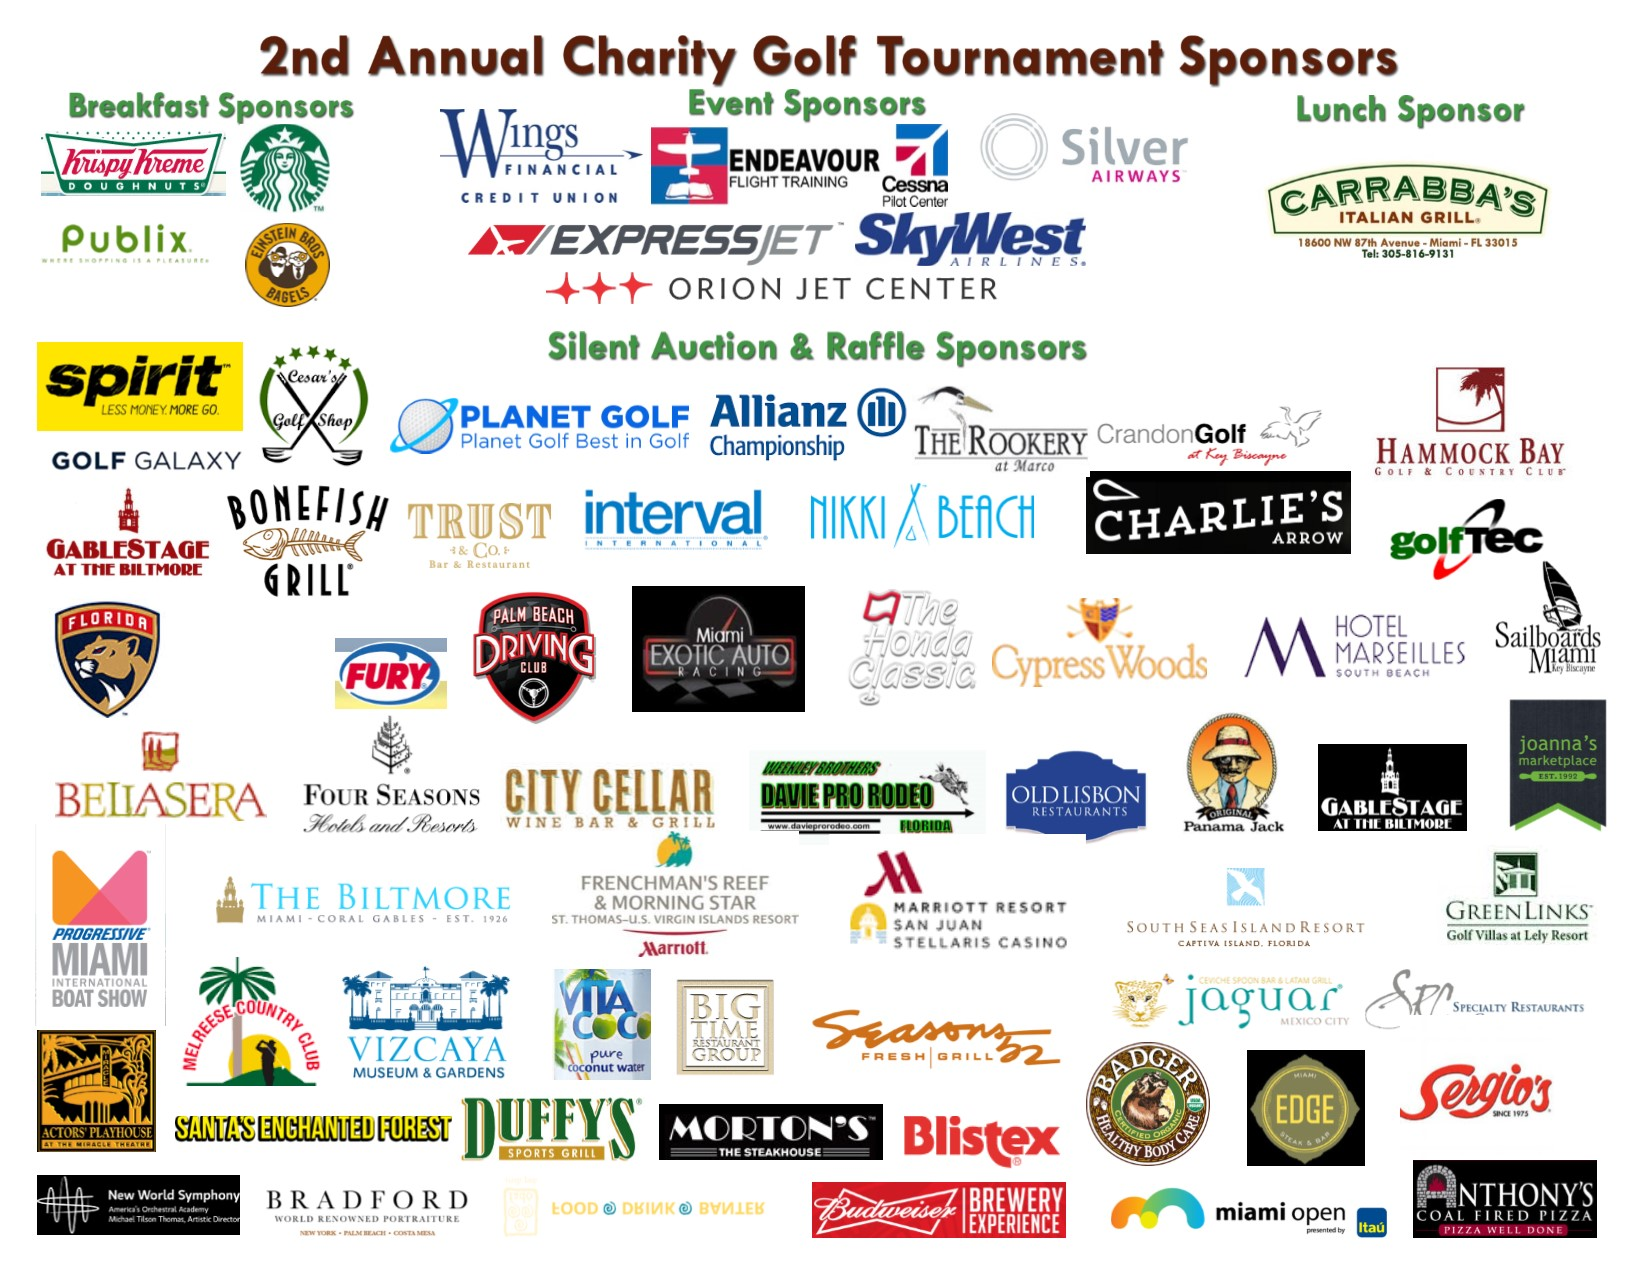 2016 Sponsors and Supporters logos